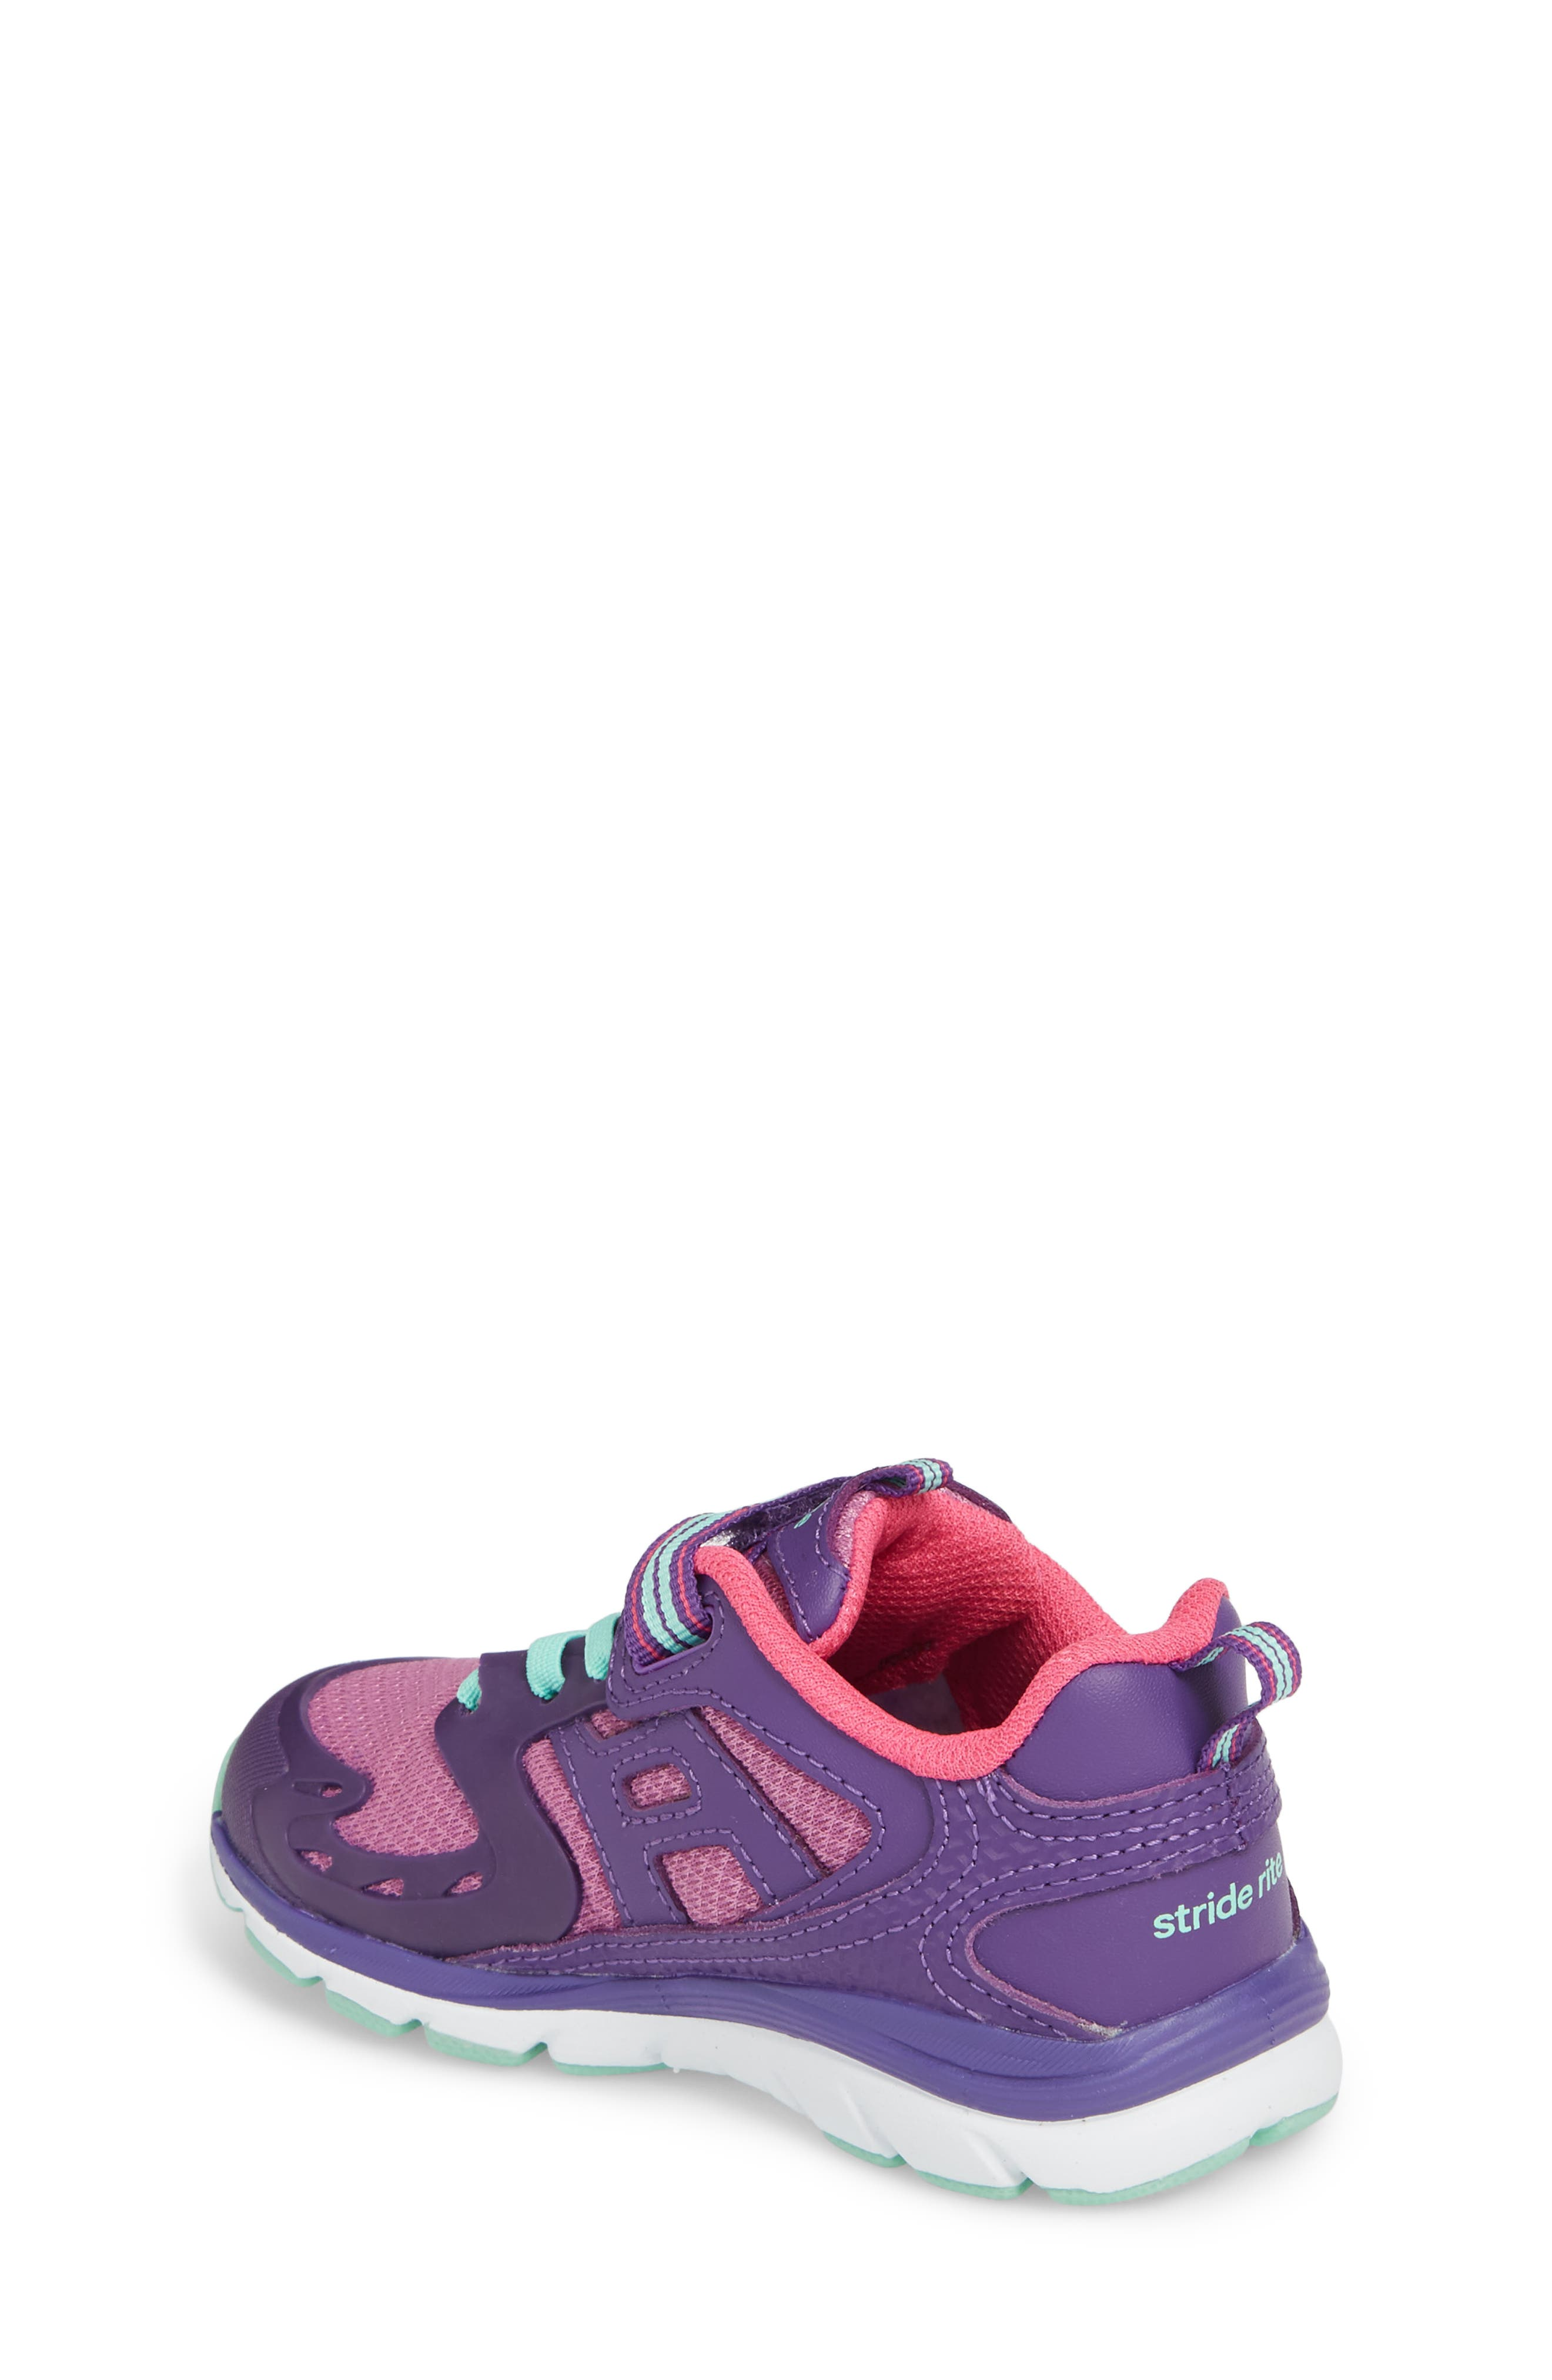 'Made2Play<sup>®</sup> Cannan Lace' Sneaker,                             Alternate thumbnail 2, color,                             500